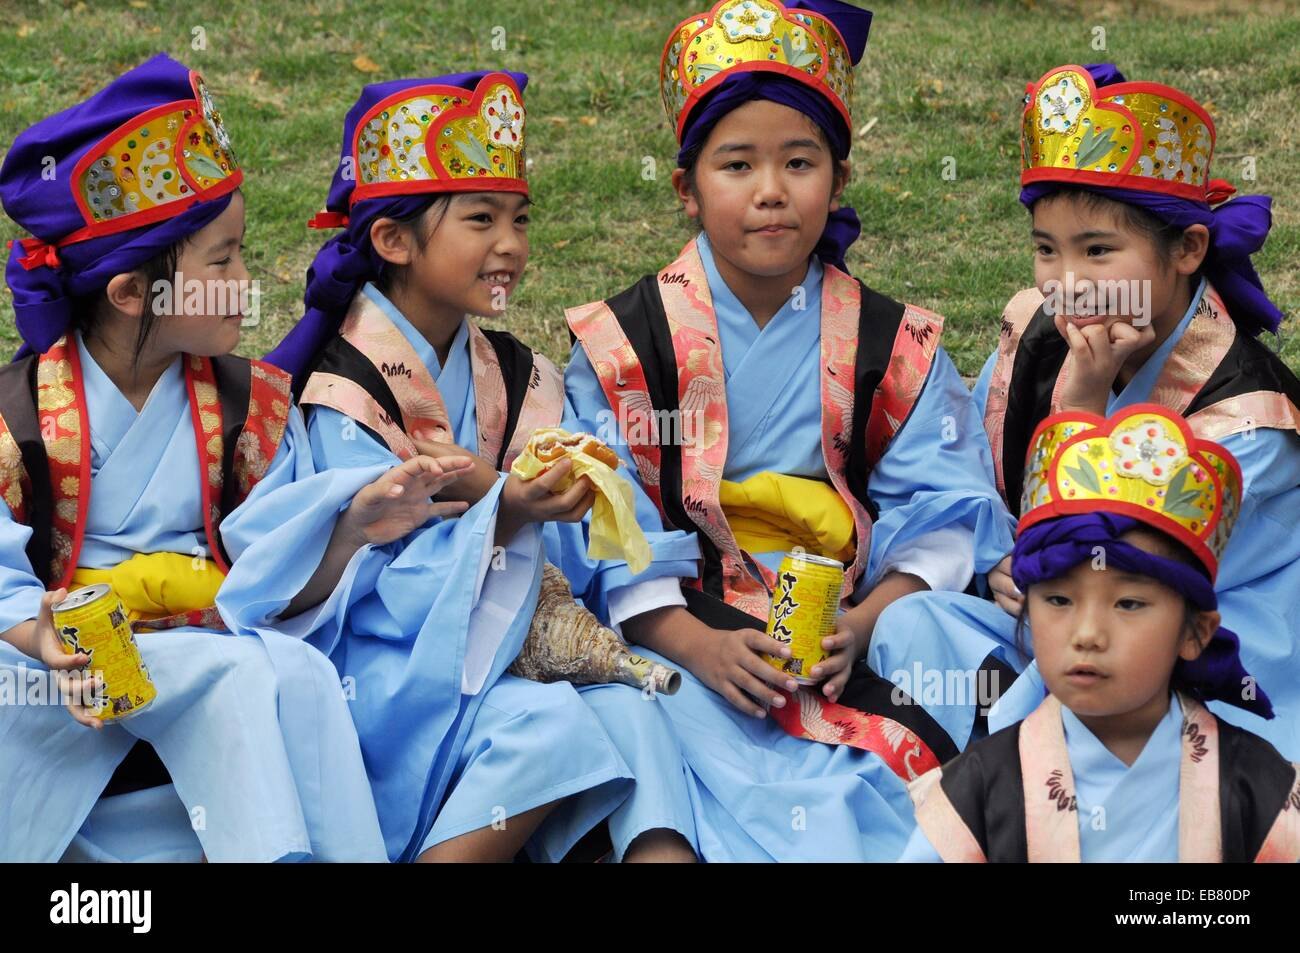 naha okinawa japan children in traditional okinawan outfit during